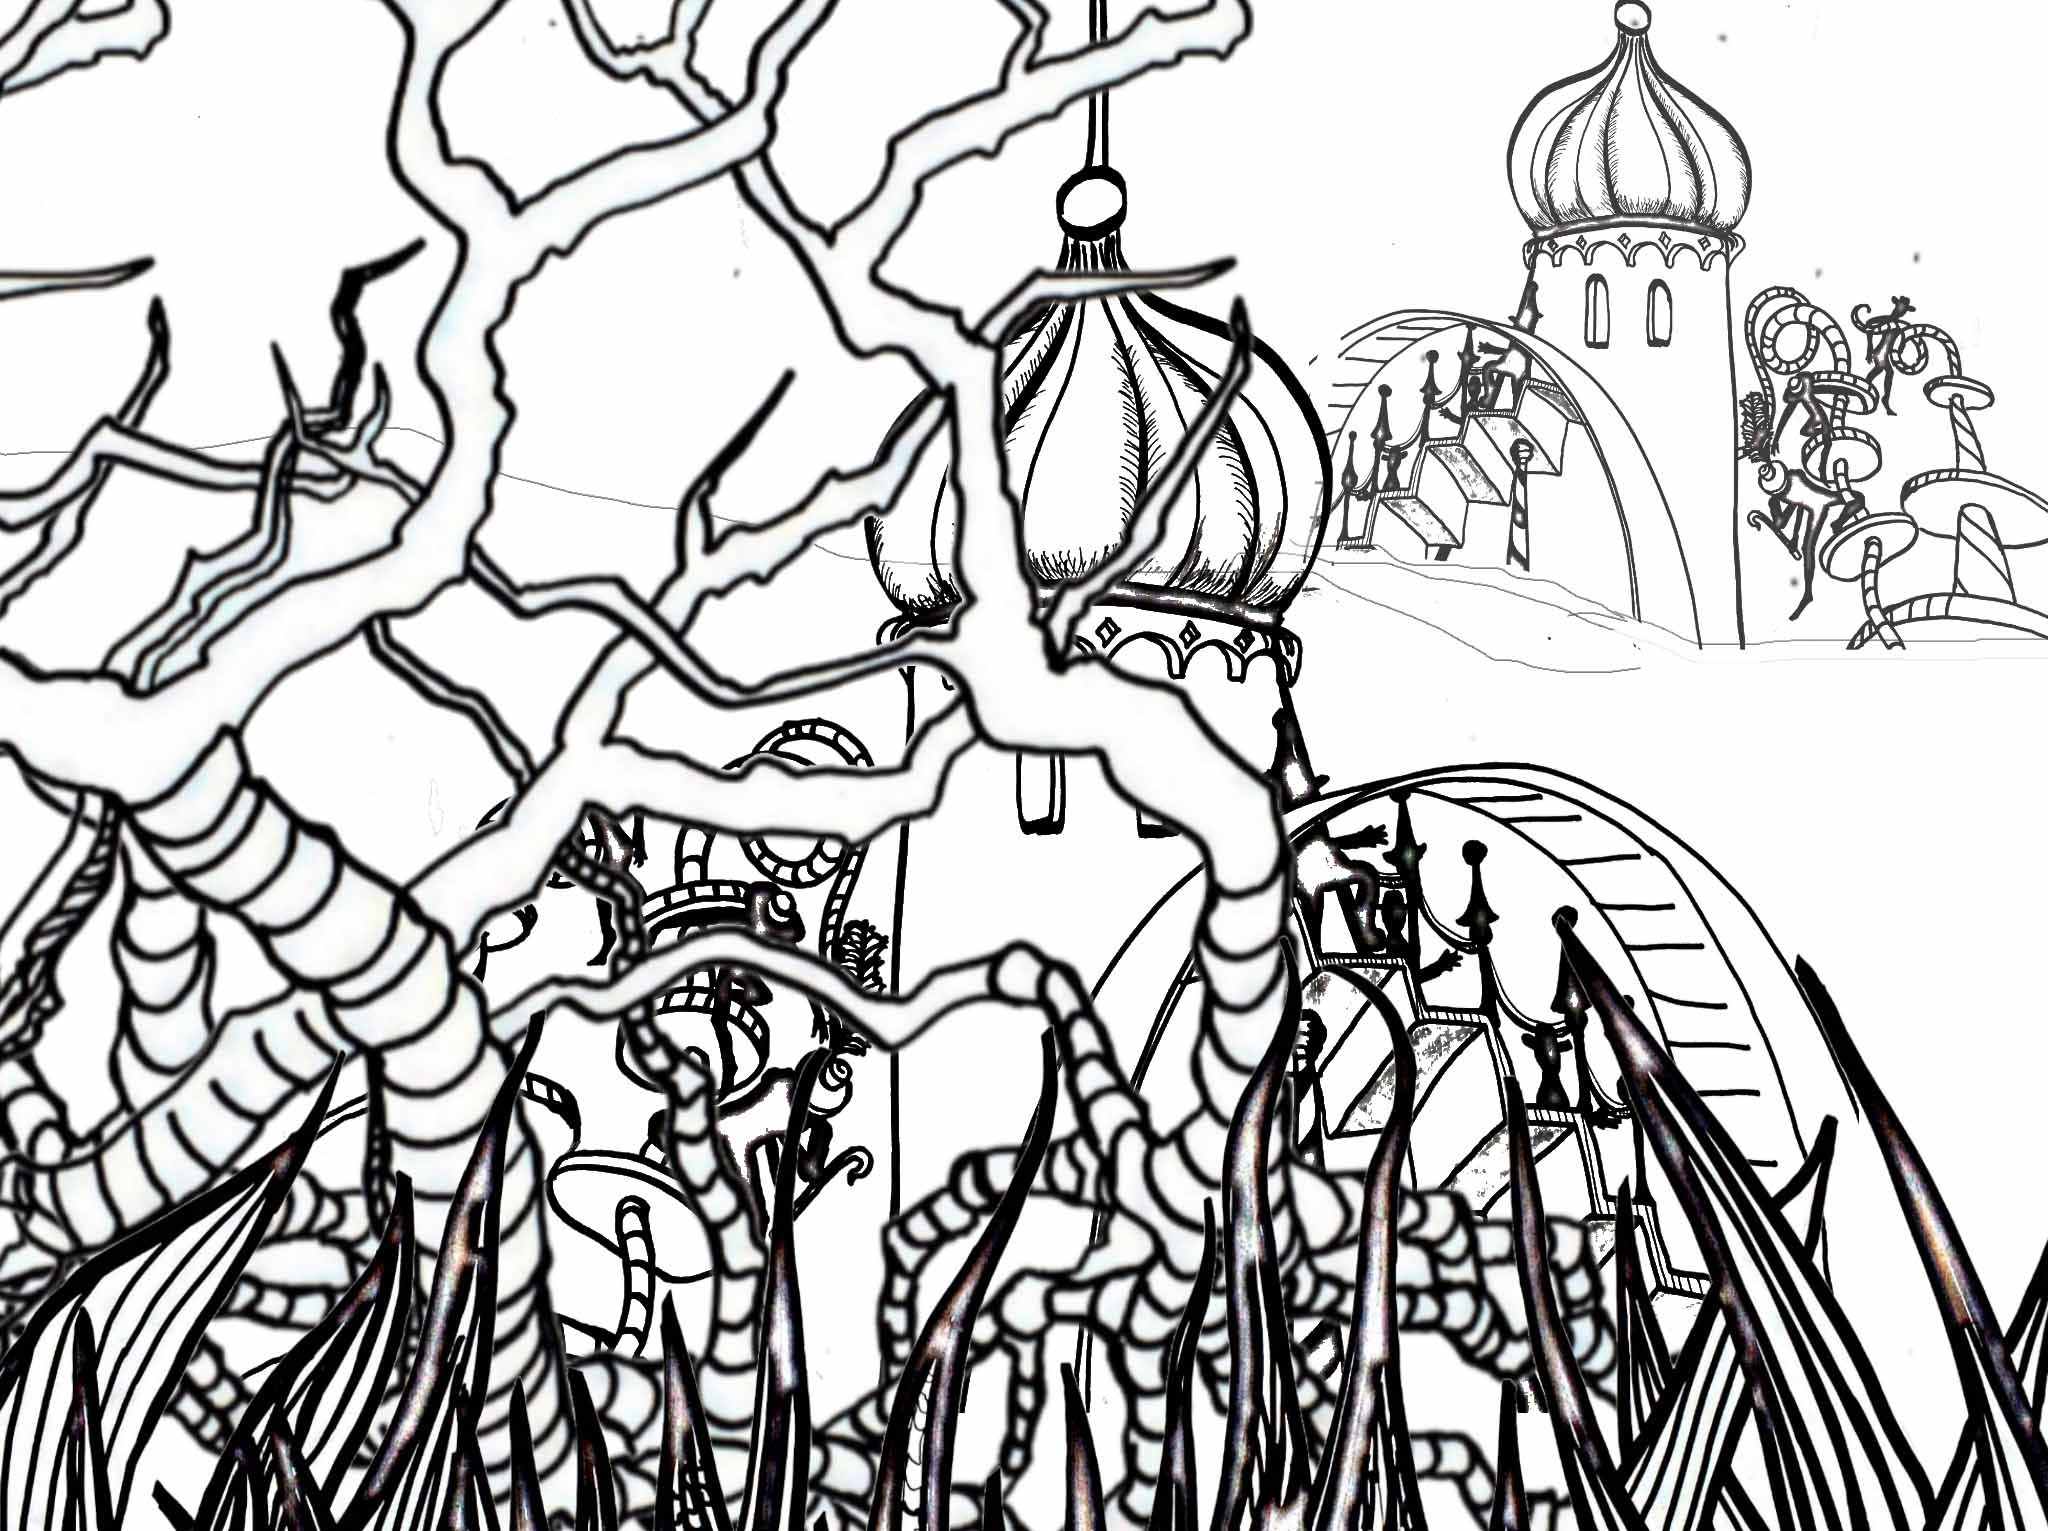 2048x1531 Drawing A Dr Seuss Inspired Cityscape Perspective